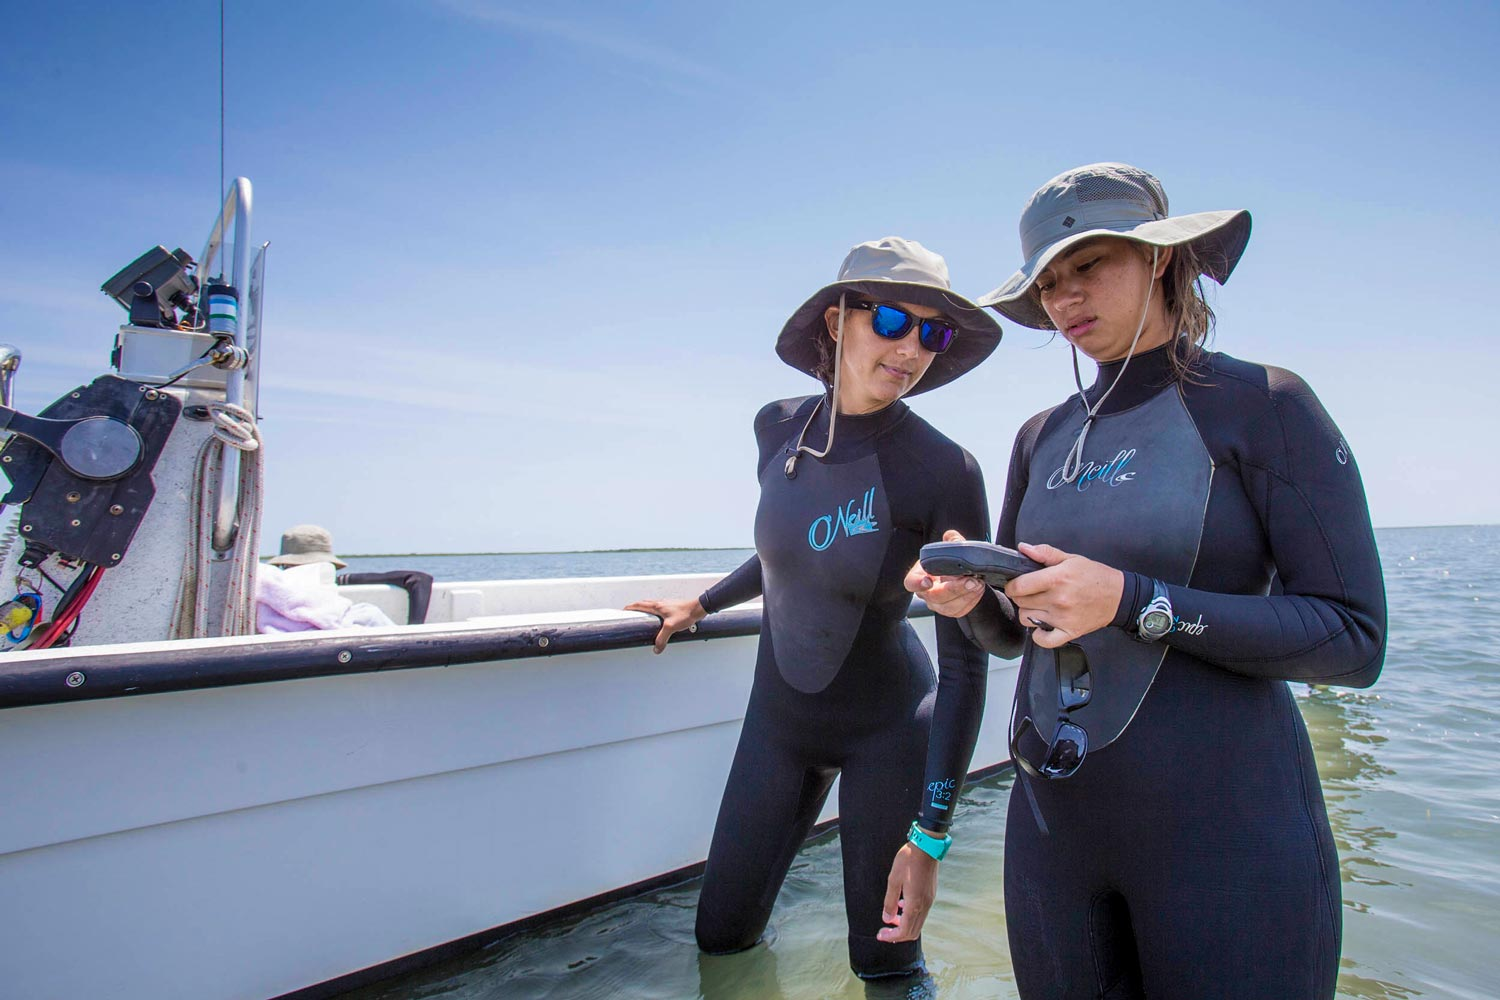 UVA researchers are working on seagrass restoration and studies in the seaside bays of Virginia's Eastern Shore.